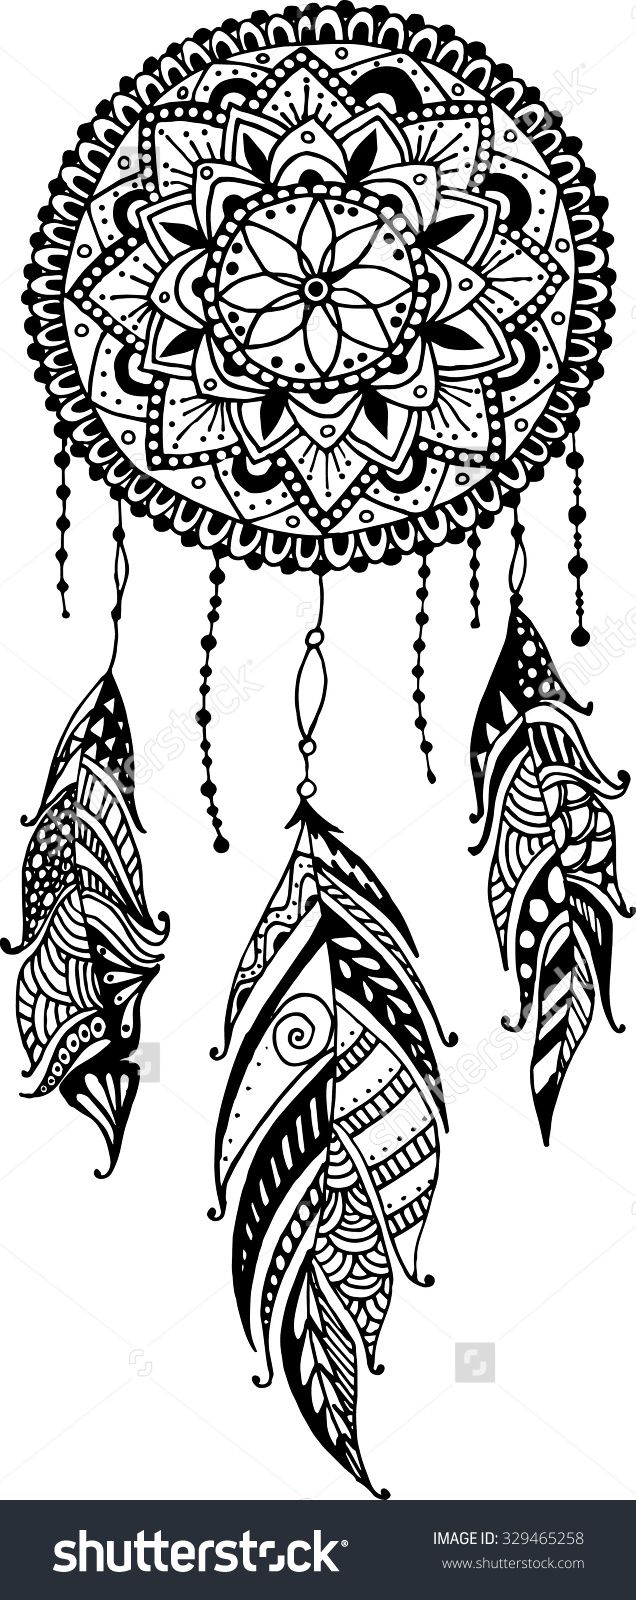 Coloring pages dream catchers - Mandala Dreamcatcher Feathers Tribal 329465258 Shutterstock